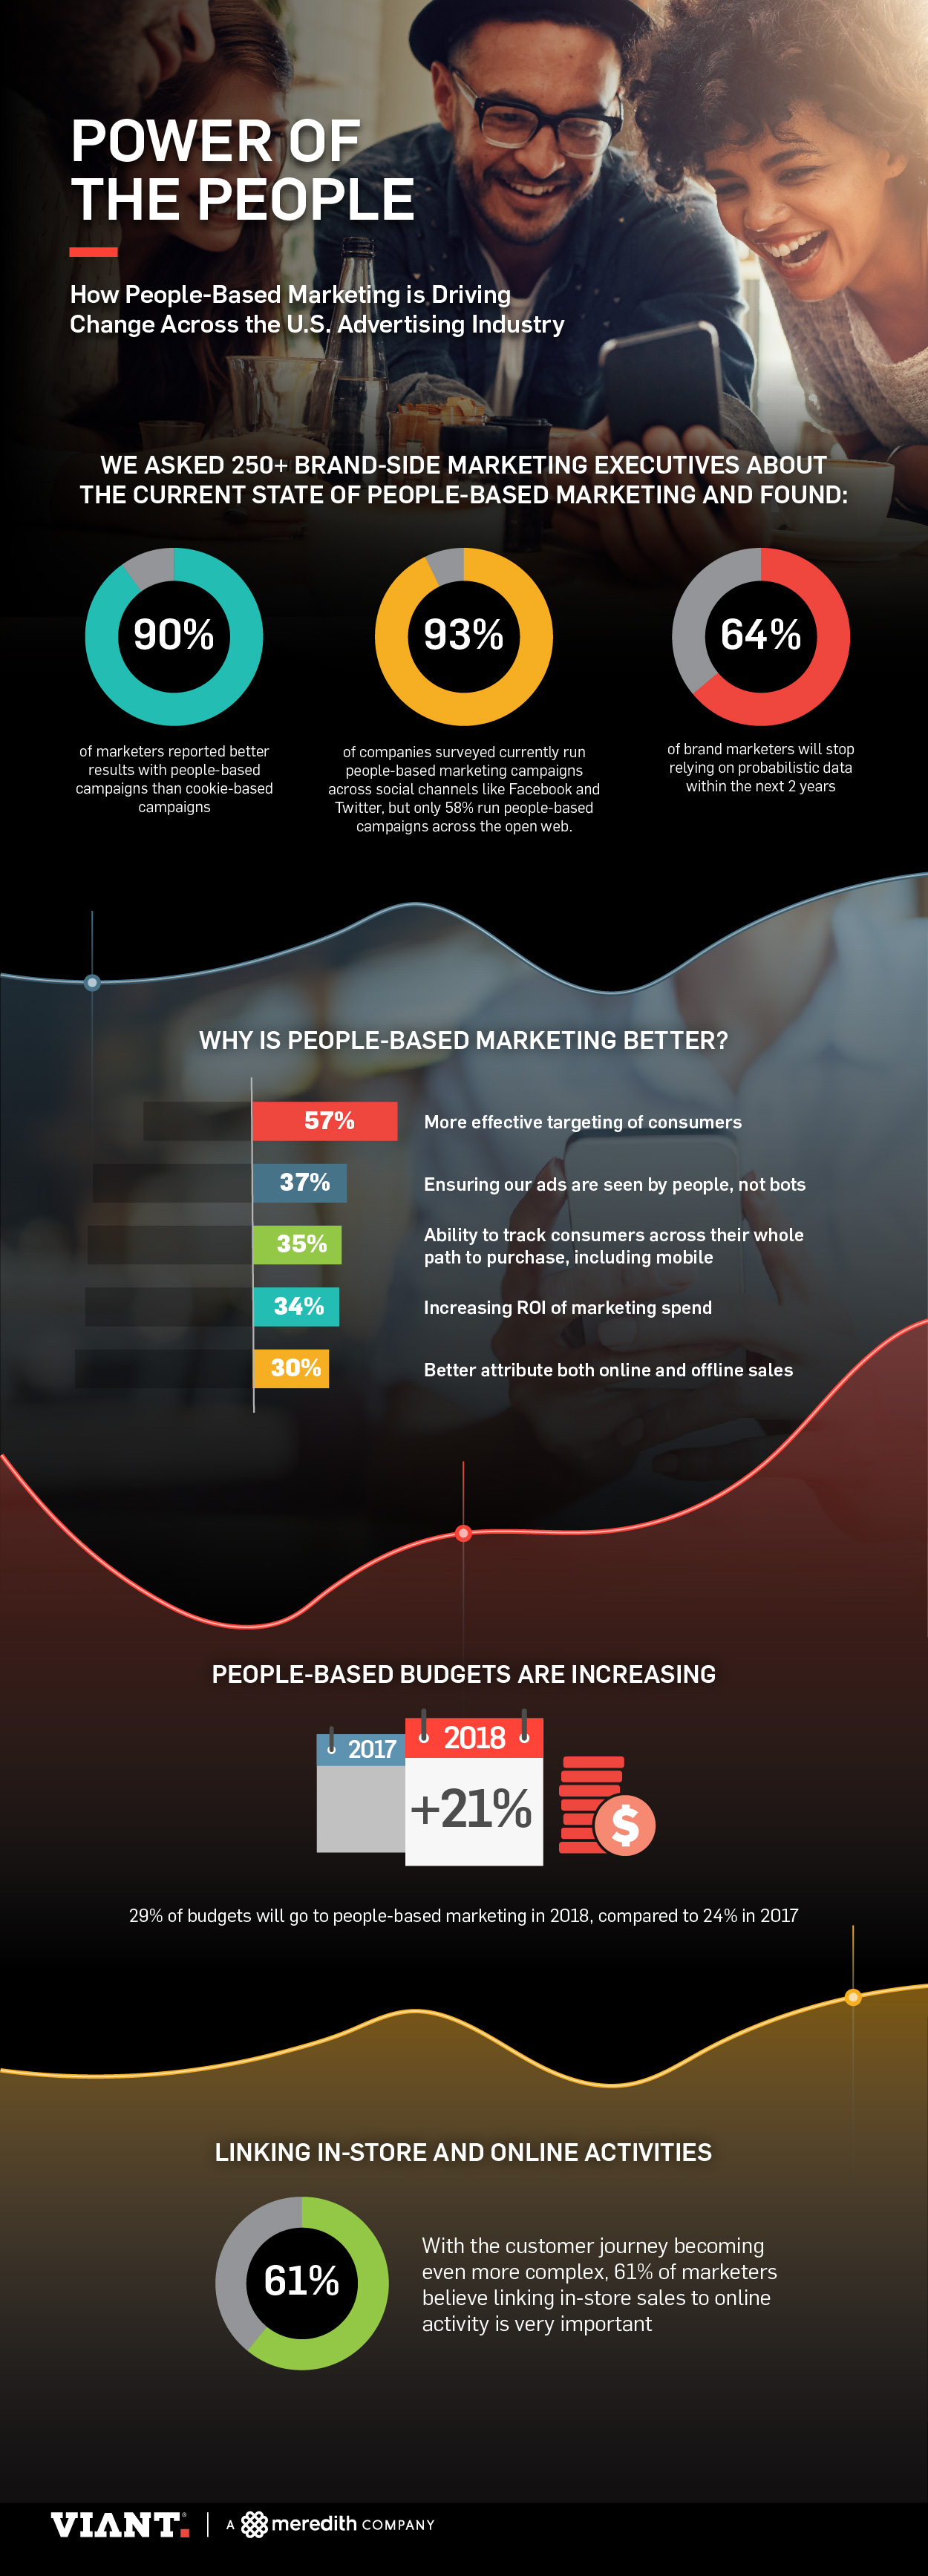 How People-Based Marketing Is Changing the Ad Industry